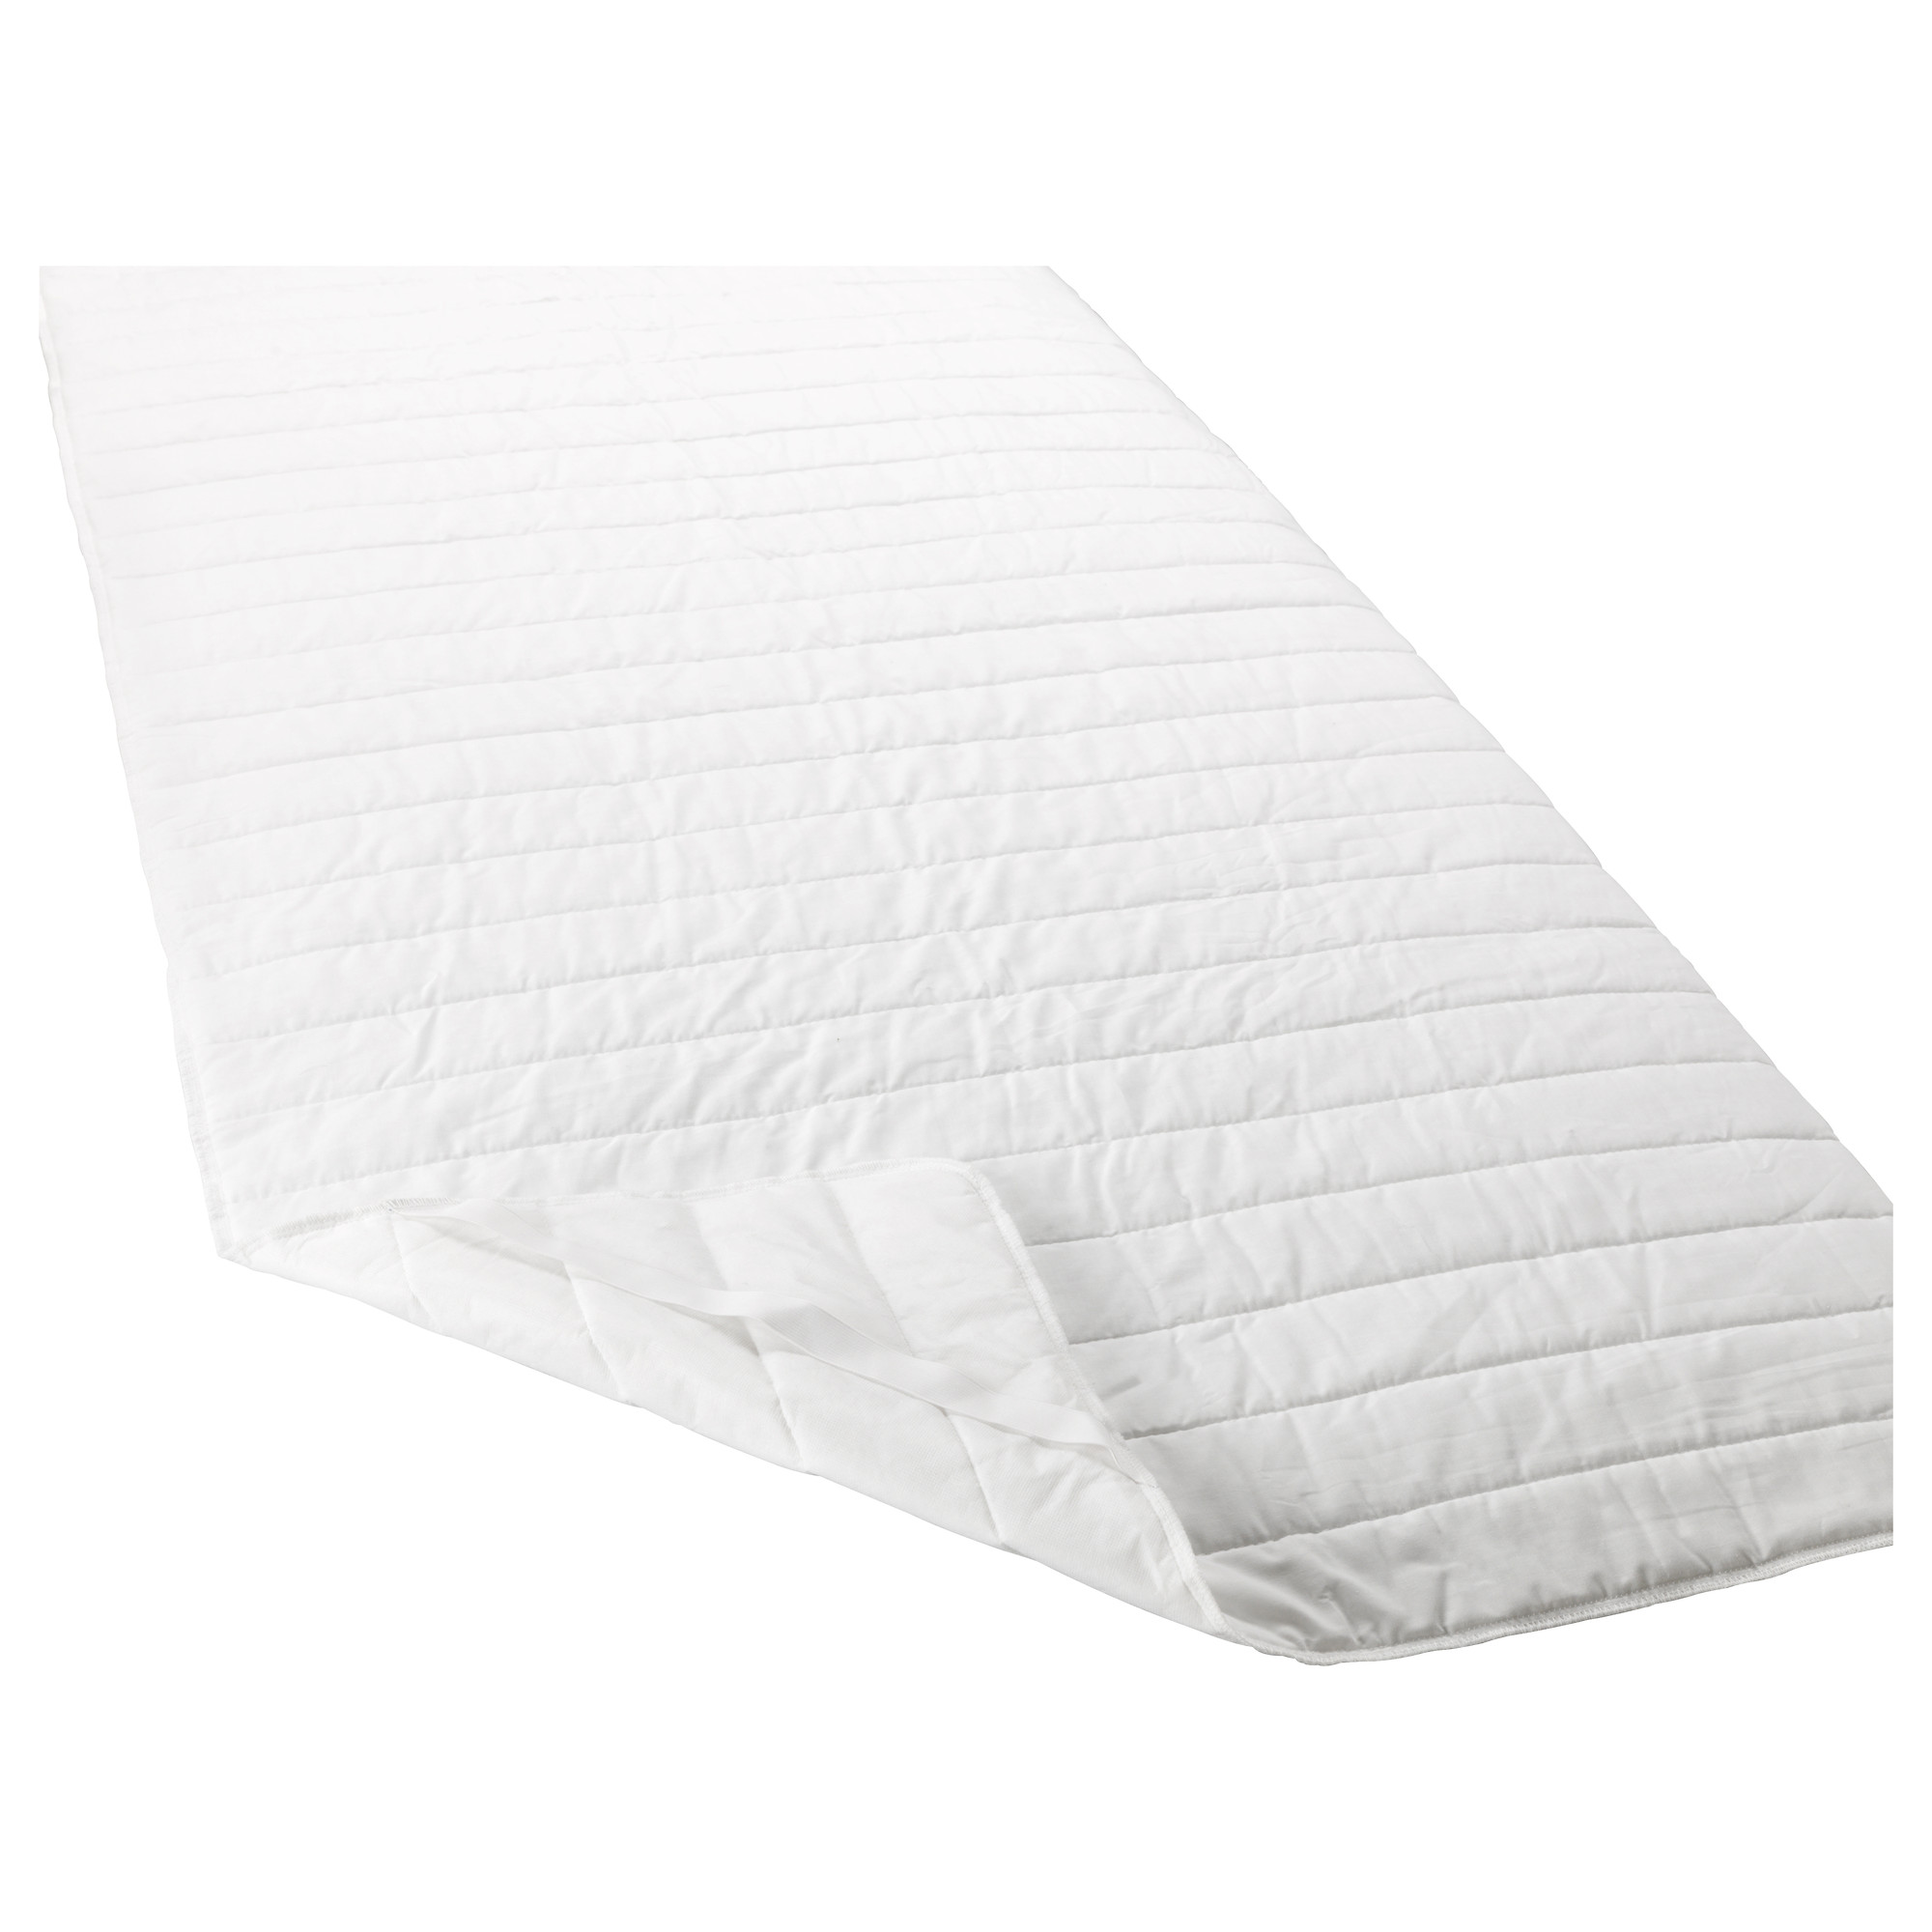 Hej Bei Ikea Osterreich With Images Mattress Mattress Protector Diy Mattress Pad